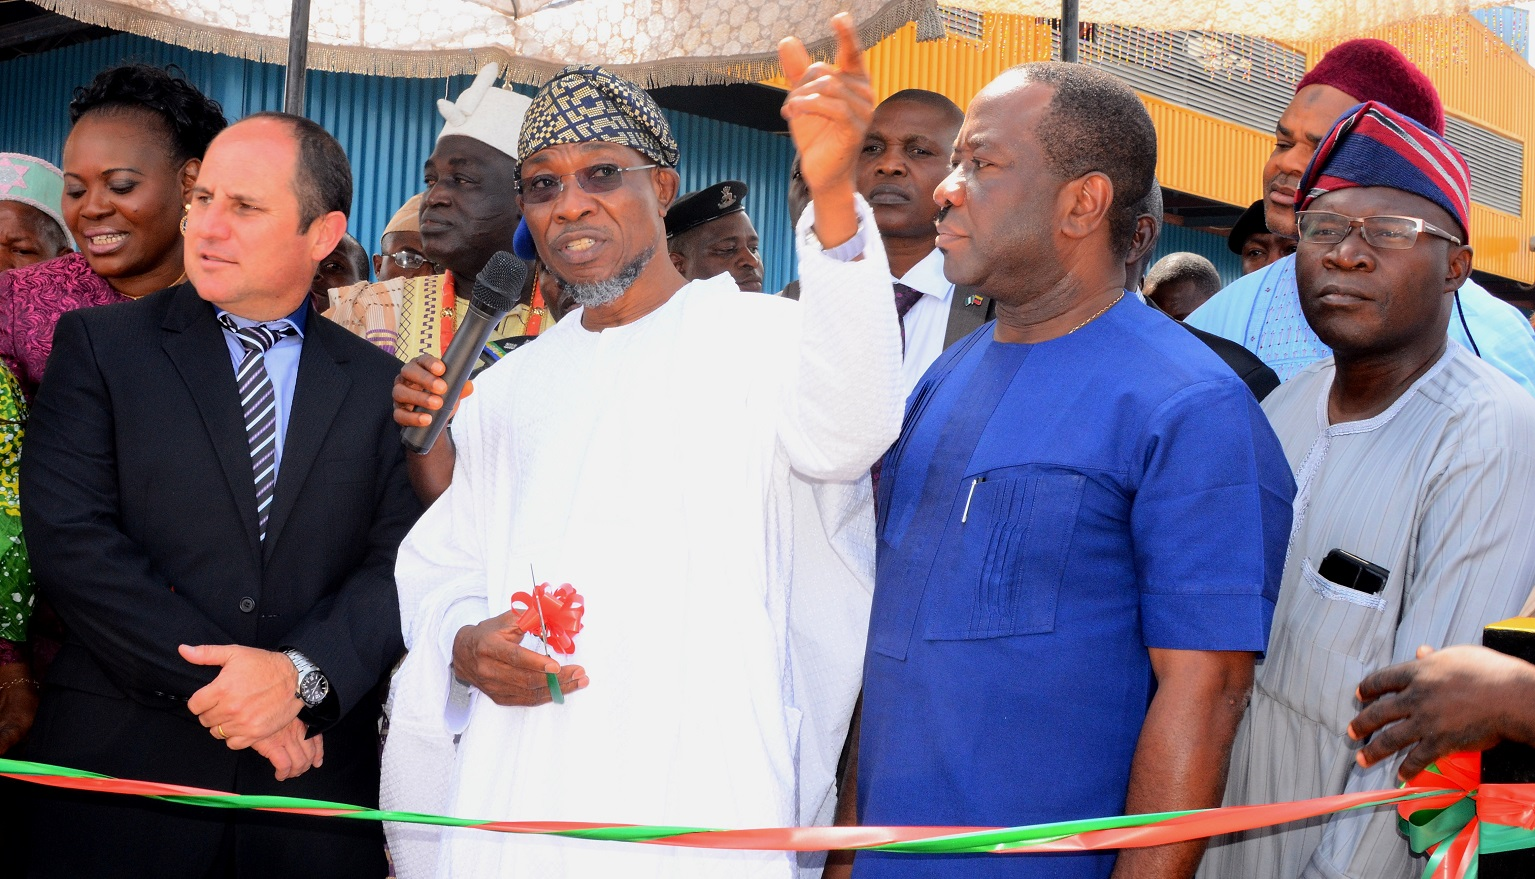 Governor State of Osun, Ogbeni Rauf Aregbesola (2nd left); Chairman International Breweries Plc Ilesa, Otunba Micheal Daramola (2nd right), Chief Operating Officer,  Mr. Andrew Ross (left), and Former Commissioner for Commerce and Cooperative, State of Osun, Mr. Ismaila Alagbada during the Official Commissioning of the New Effluent Treatment Plant and Inspection of Expansion Project at International Breweries Plc, Ilesa on Tuesday 8/12/2015.